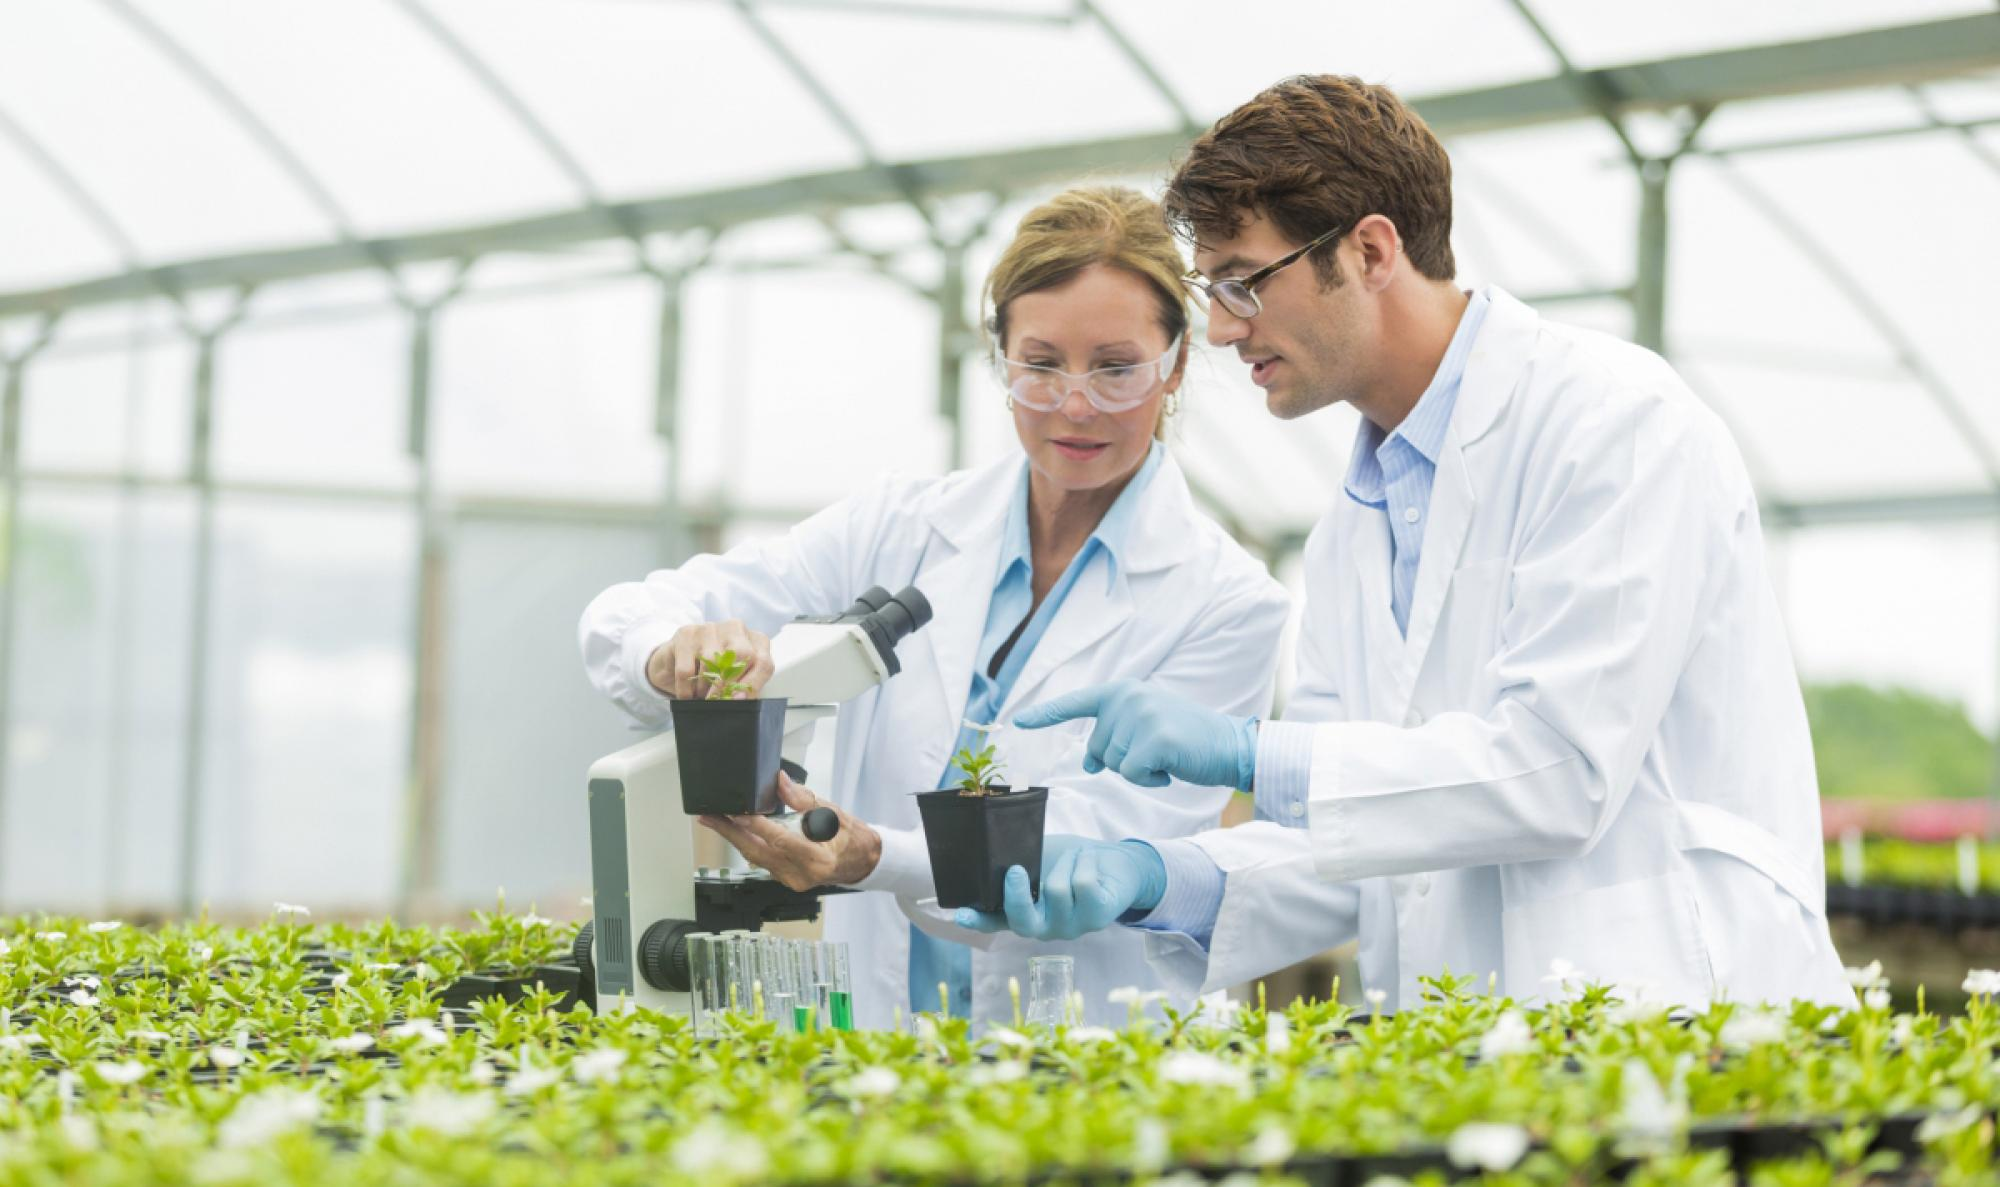 Researchers doing a crop study in a greenhouse